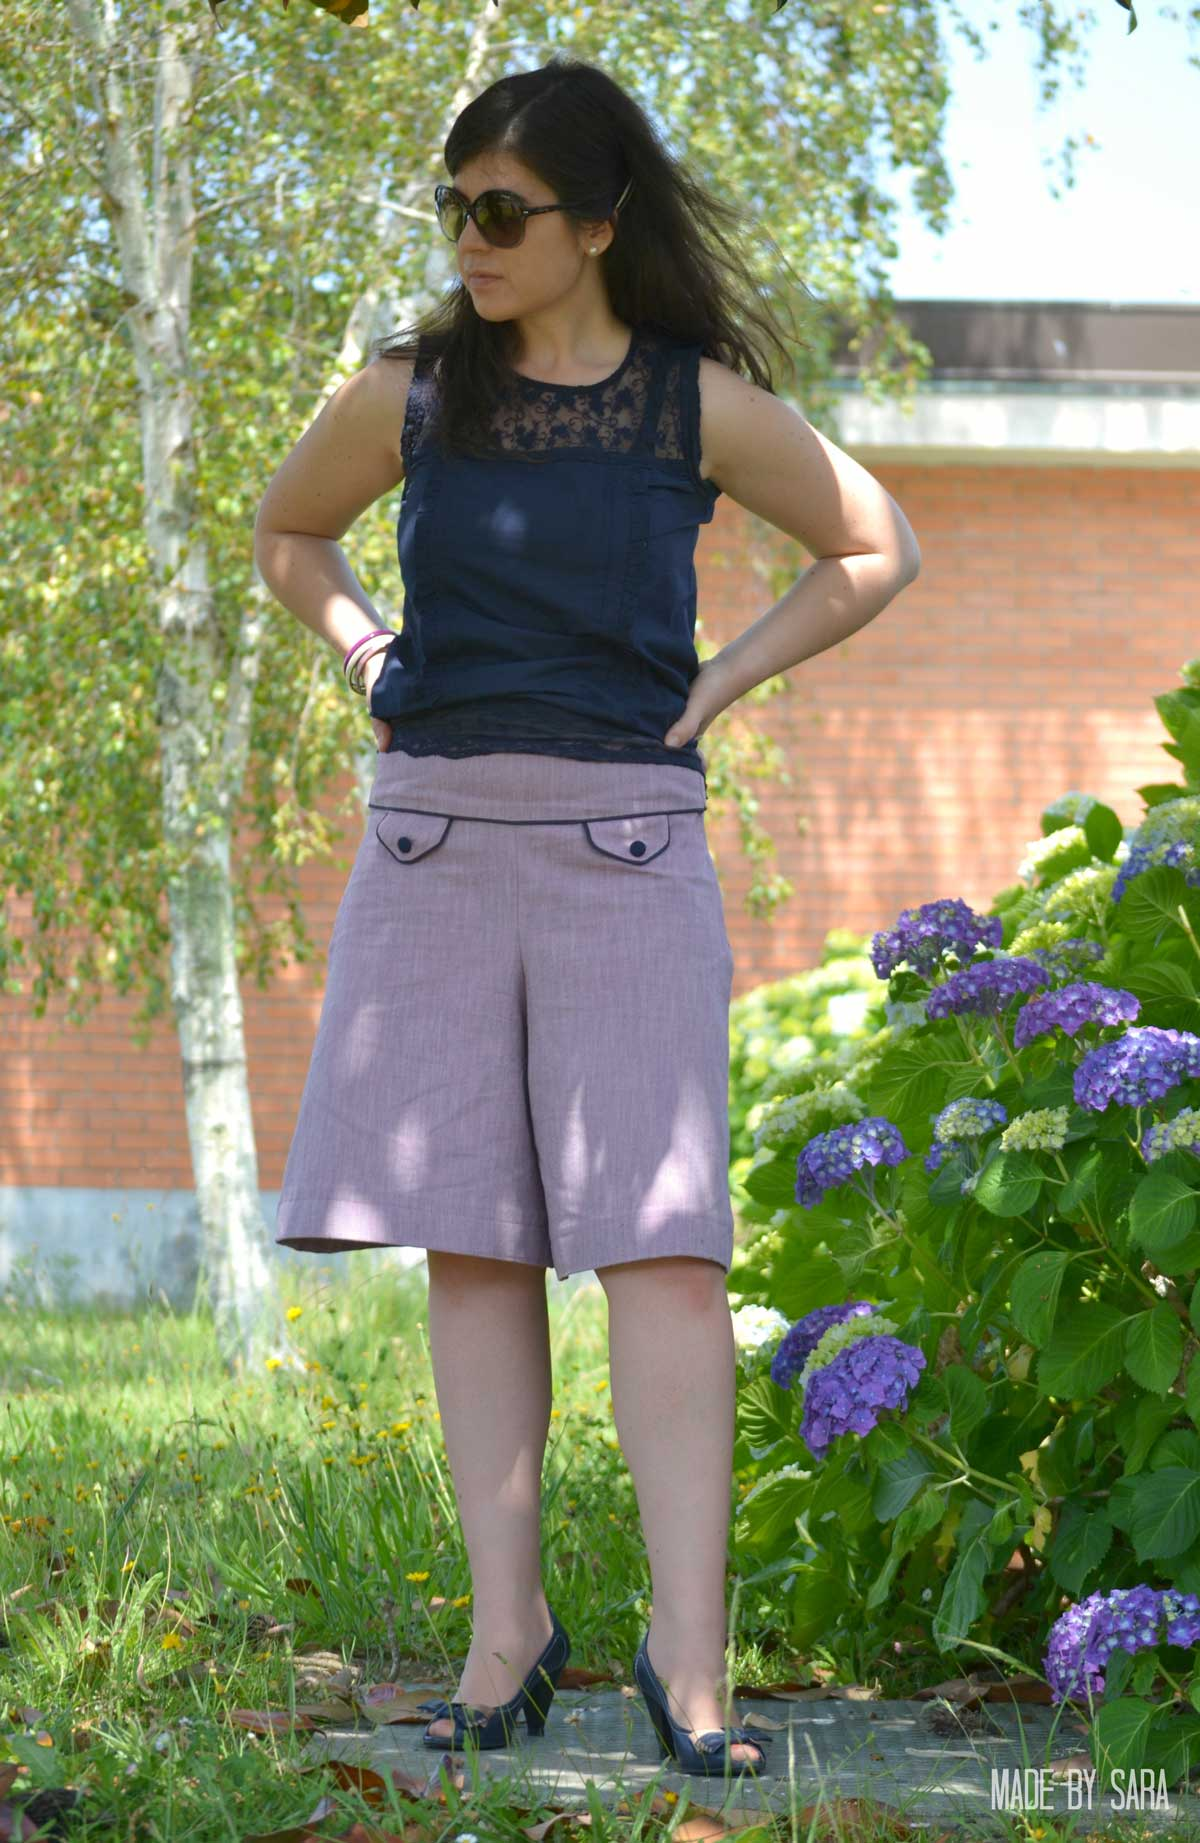 Compagnie-M_Nina_skirt_culottes_made_by_sara